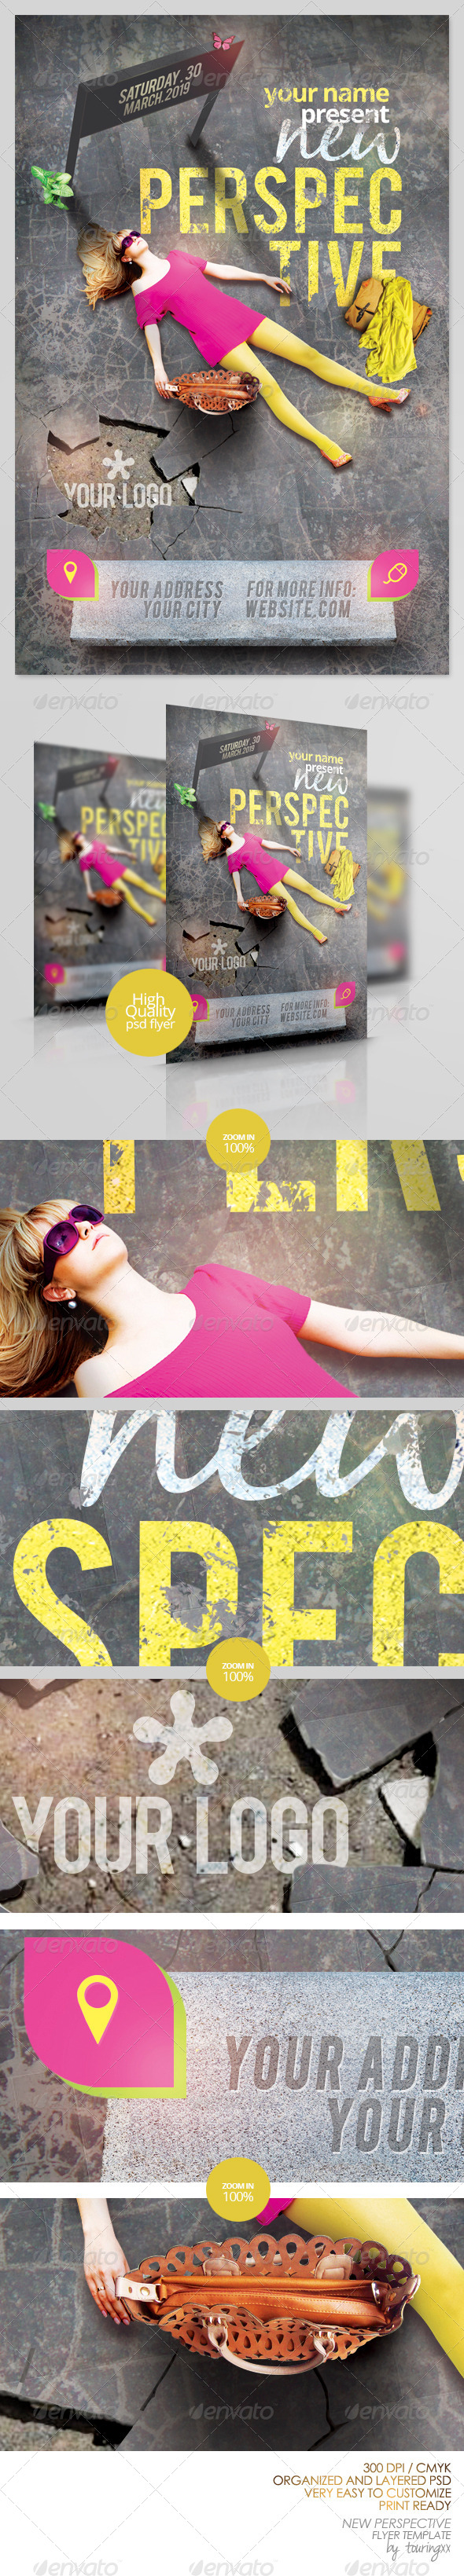 New Perspective Flyer Template - Flyers Print Templates